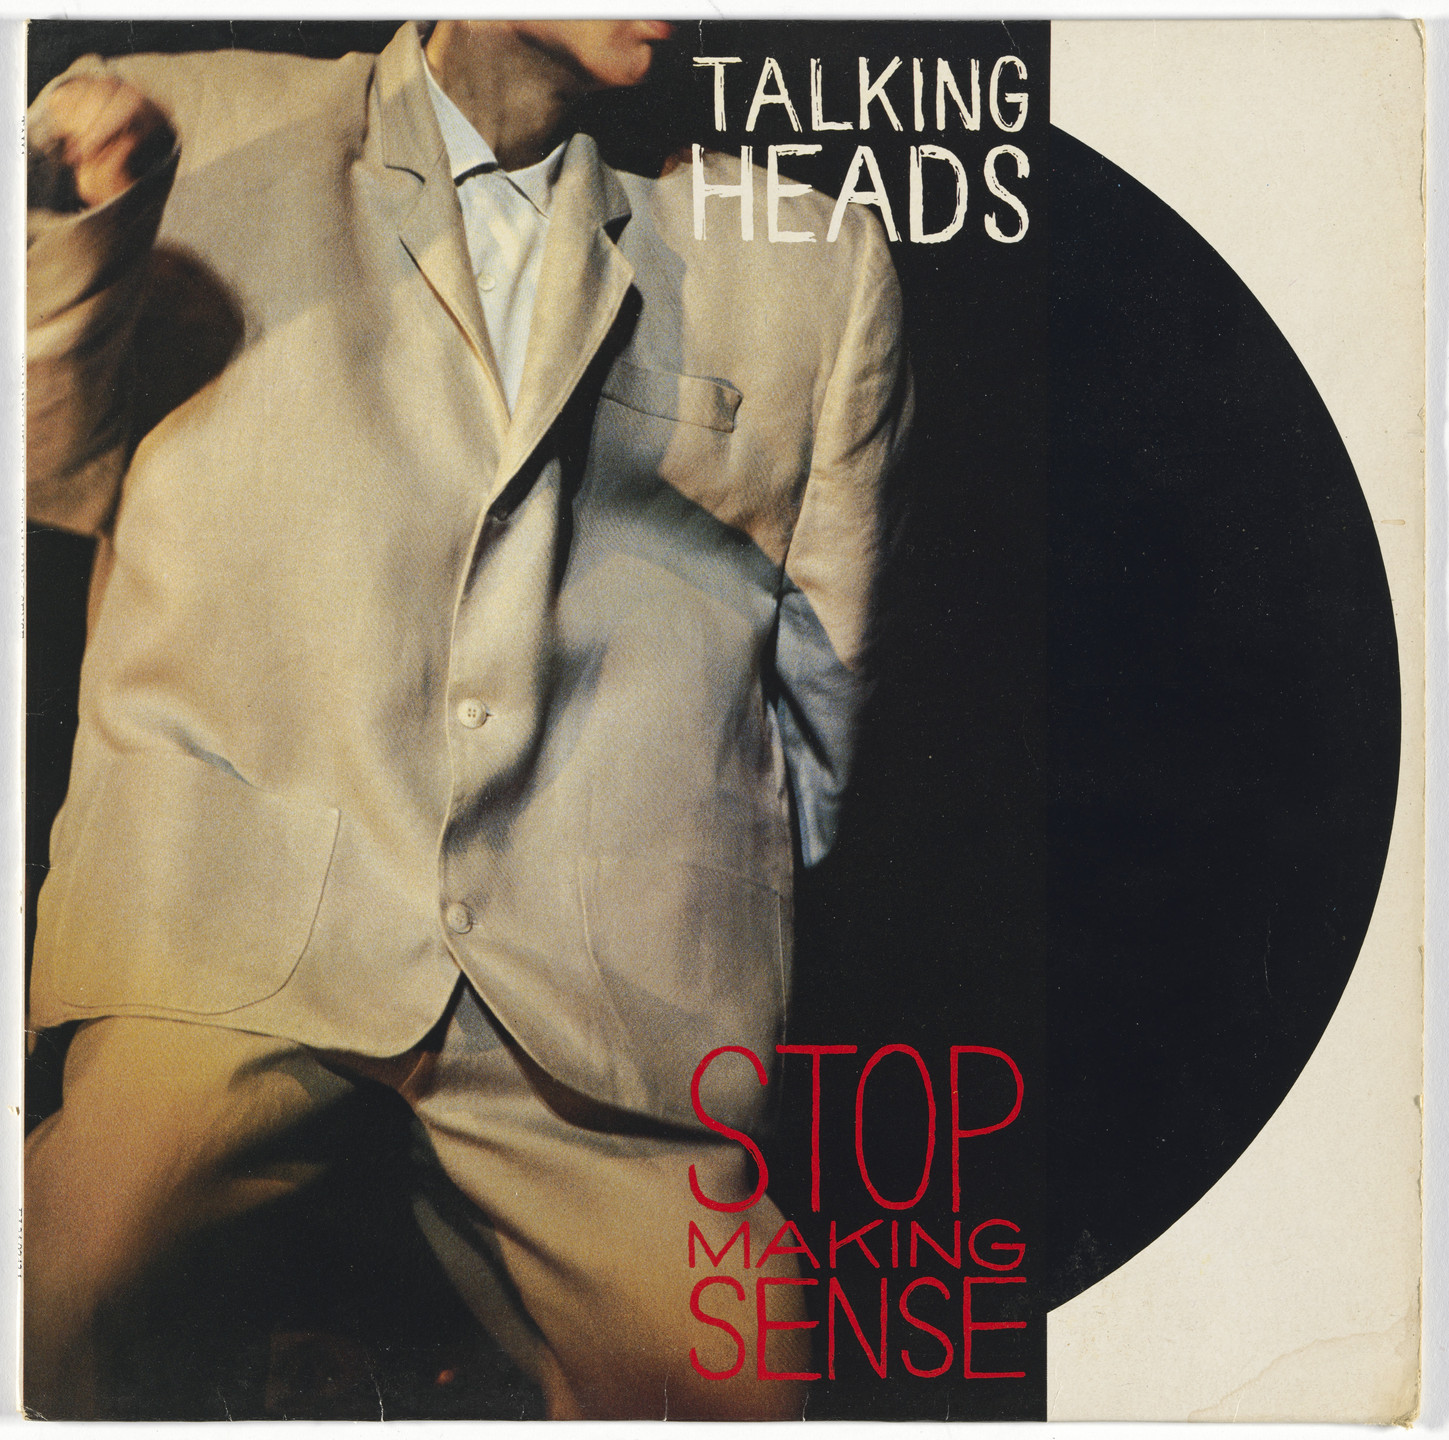 David Byrne, Michael Hodgson, Jeff Ayeroff, Adelle Lutz, Sire Records. Album cover for Talking Heads, Stop Making Sense. 1984